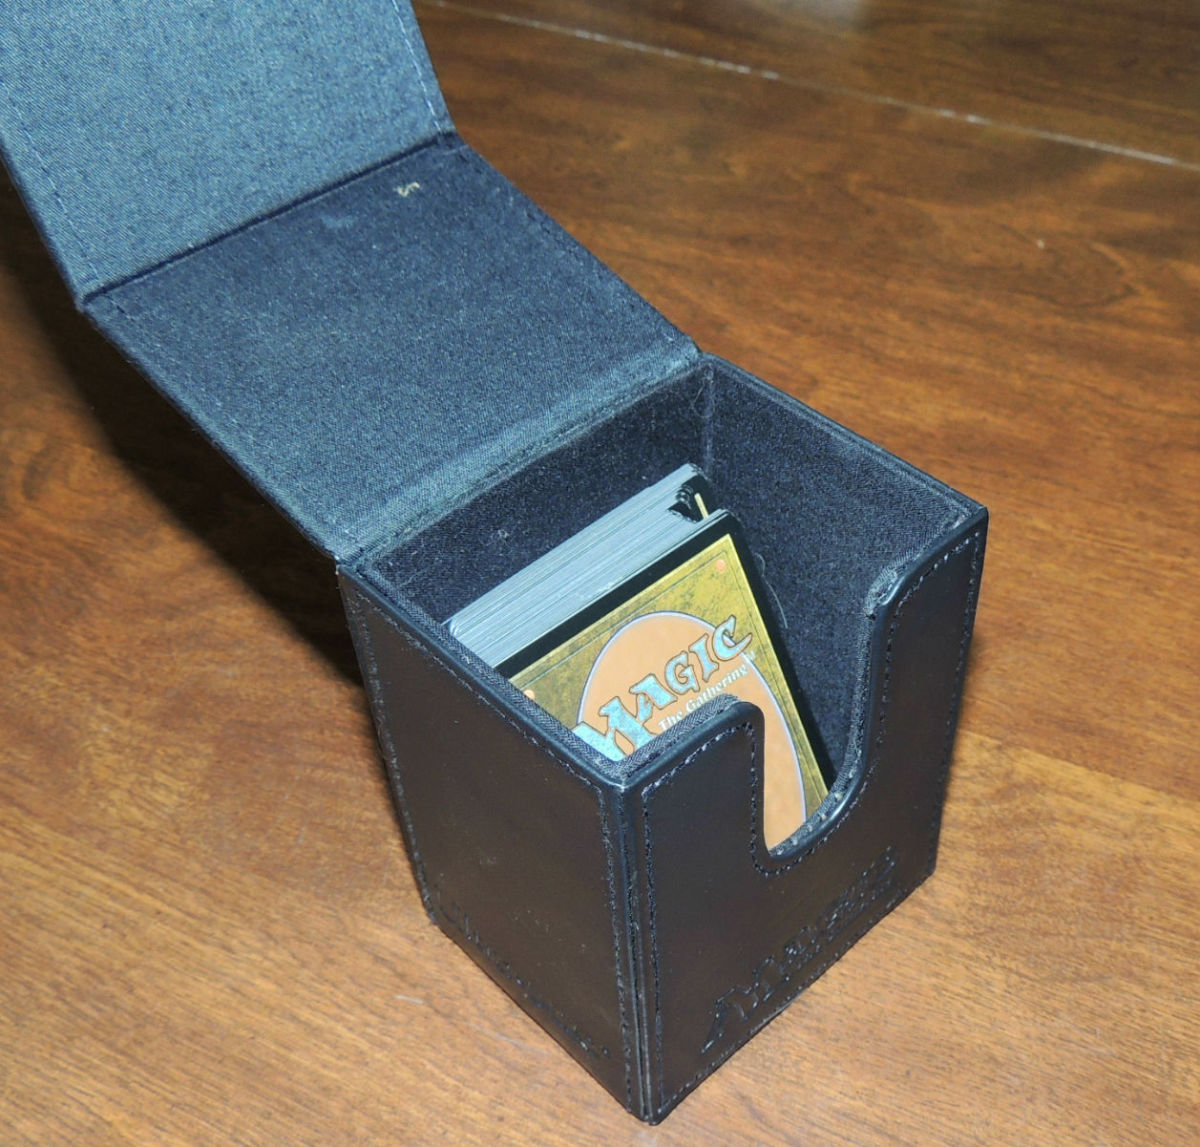 This deck box is solid and is the perfect solution for storing a deck of Magic: The Gathering Cards.